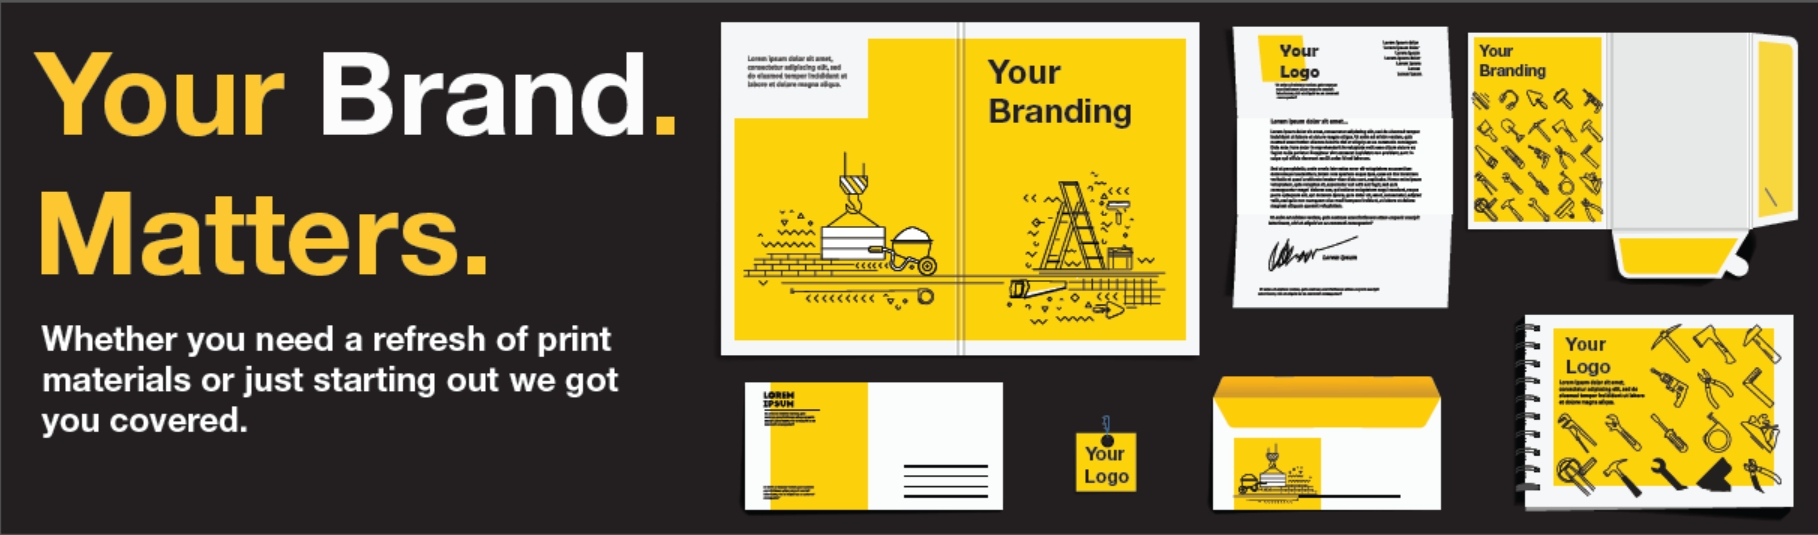 Your Brand Matters